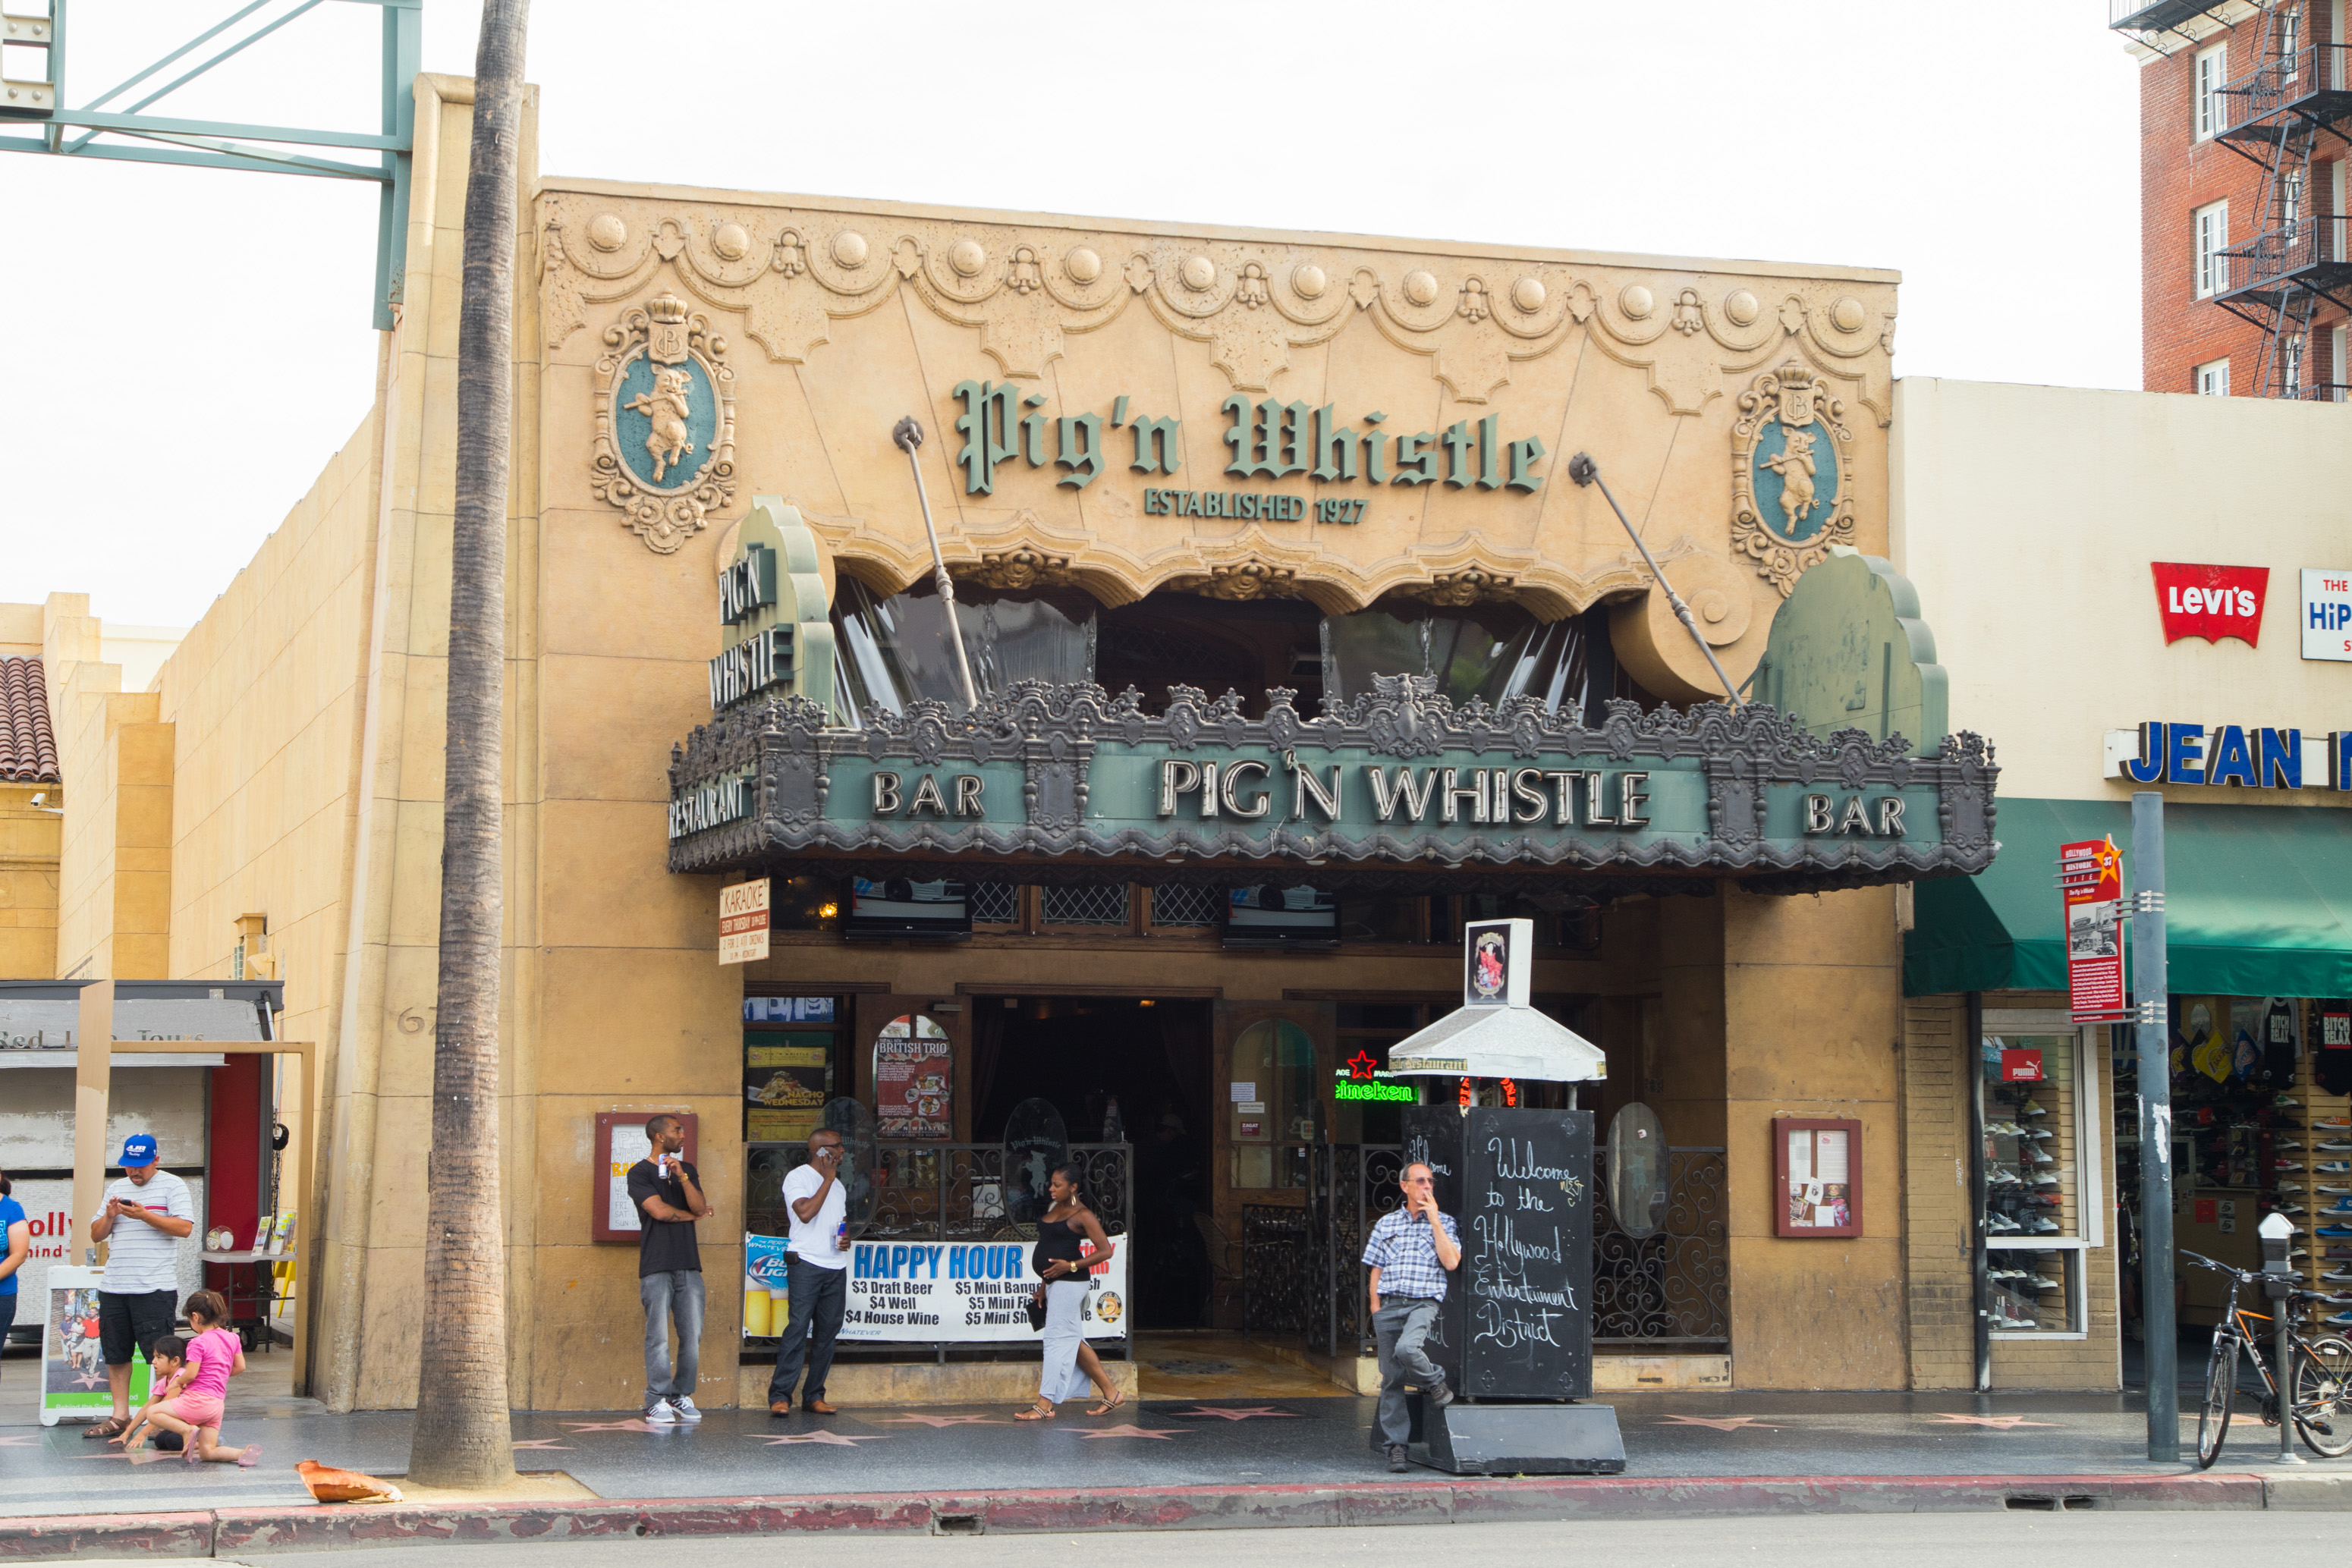 Outside of Pig 'n Whistle in Hollywood in 2014.